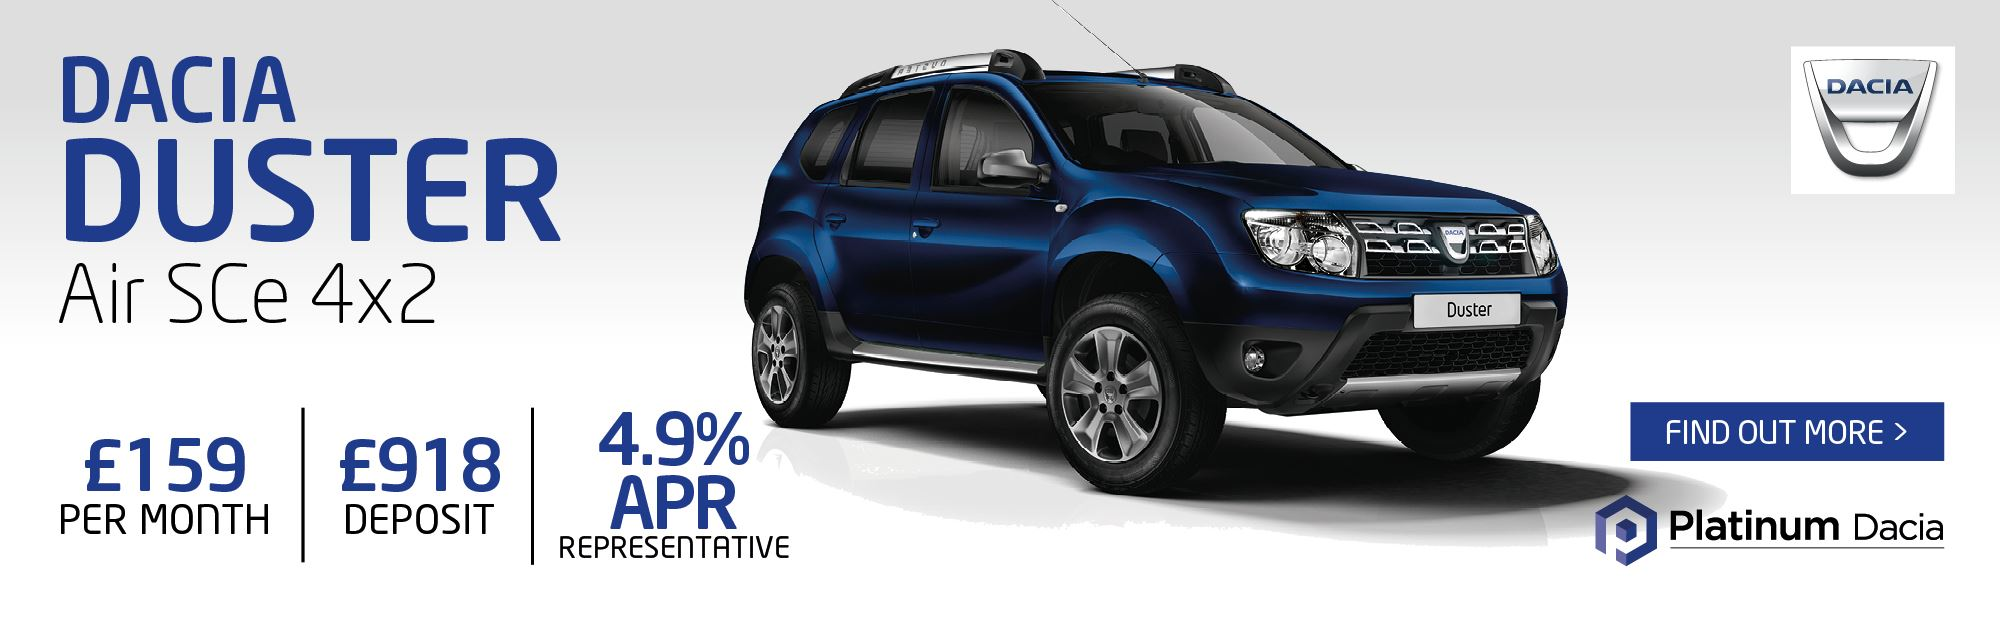 Dacia Duster Offer